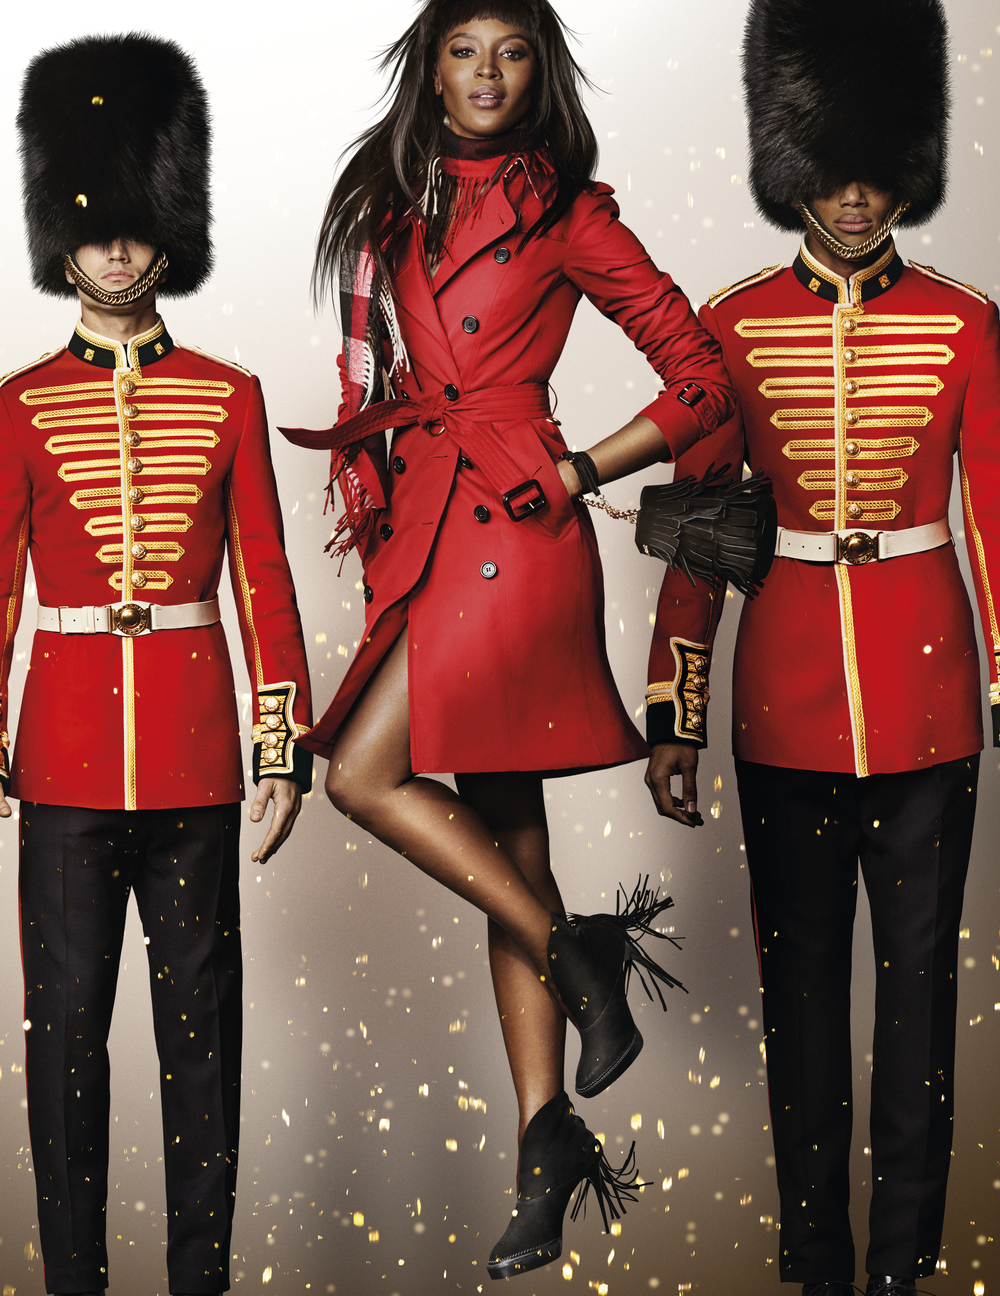 Naomi-Campbell-in-the-Burberry-Festive-Campaign-shot-by-Mario-Testino.jpg